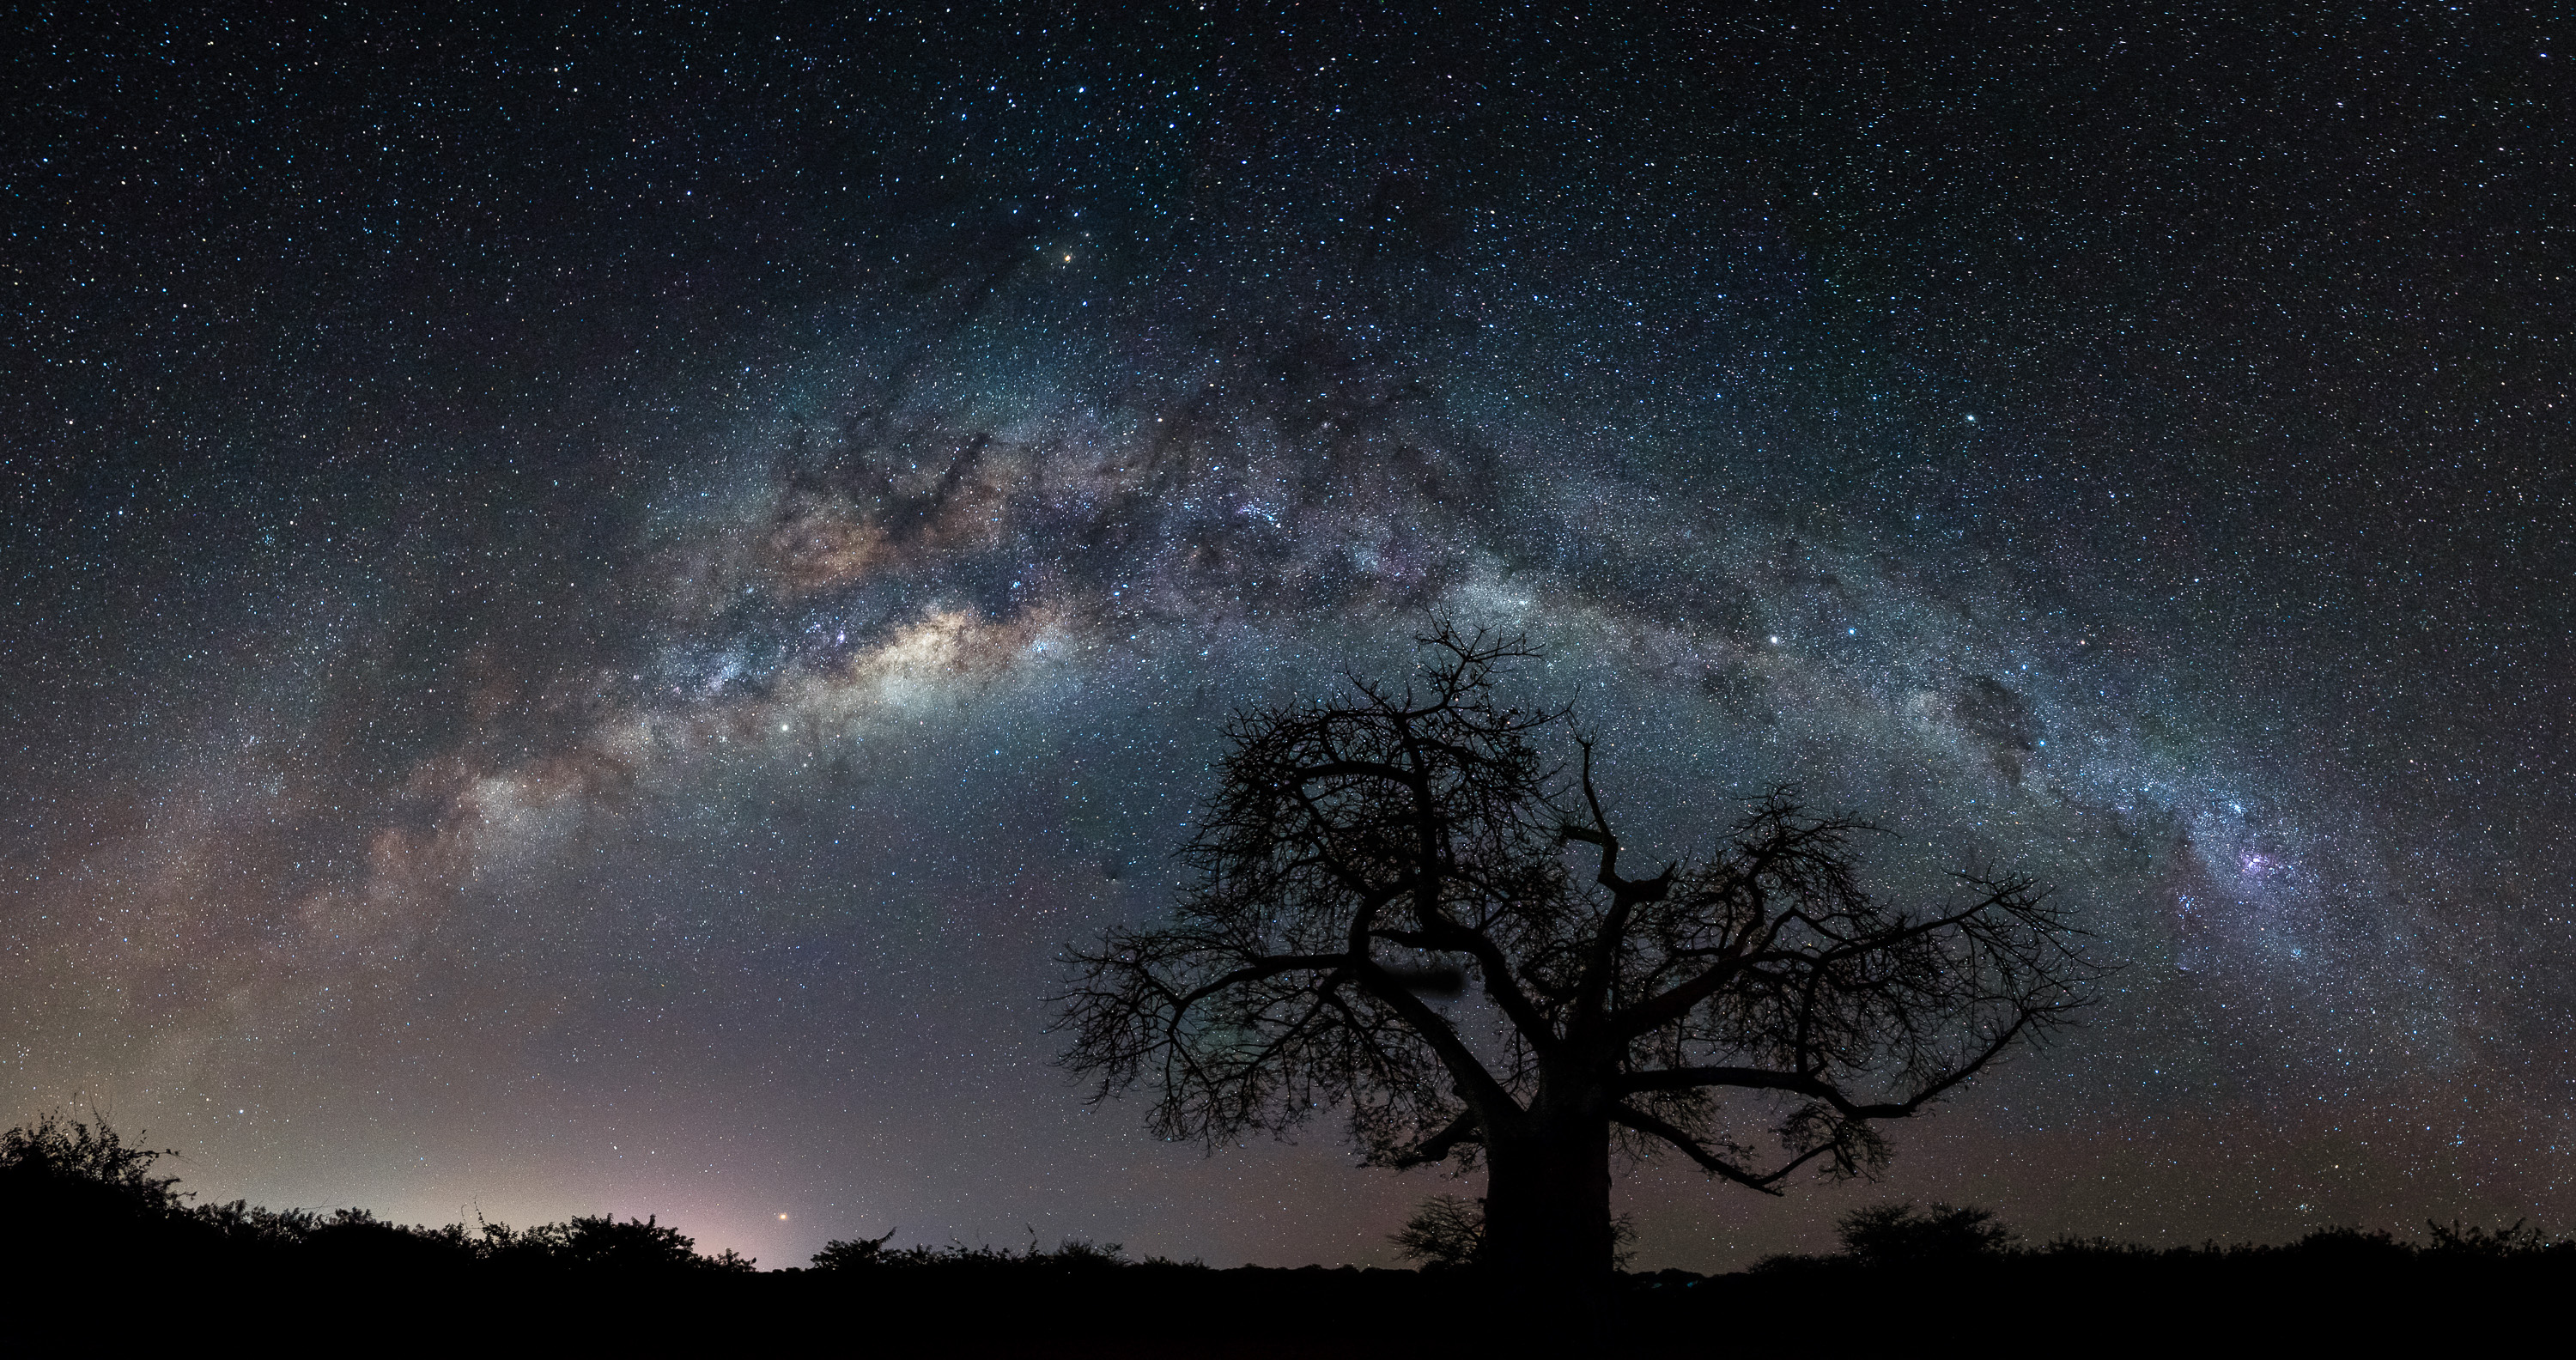 The Mily Way stretches across the night sky in Africa